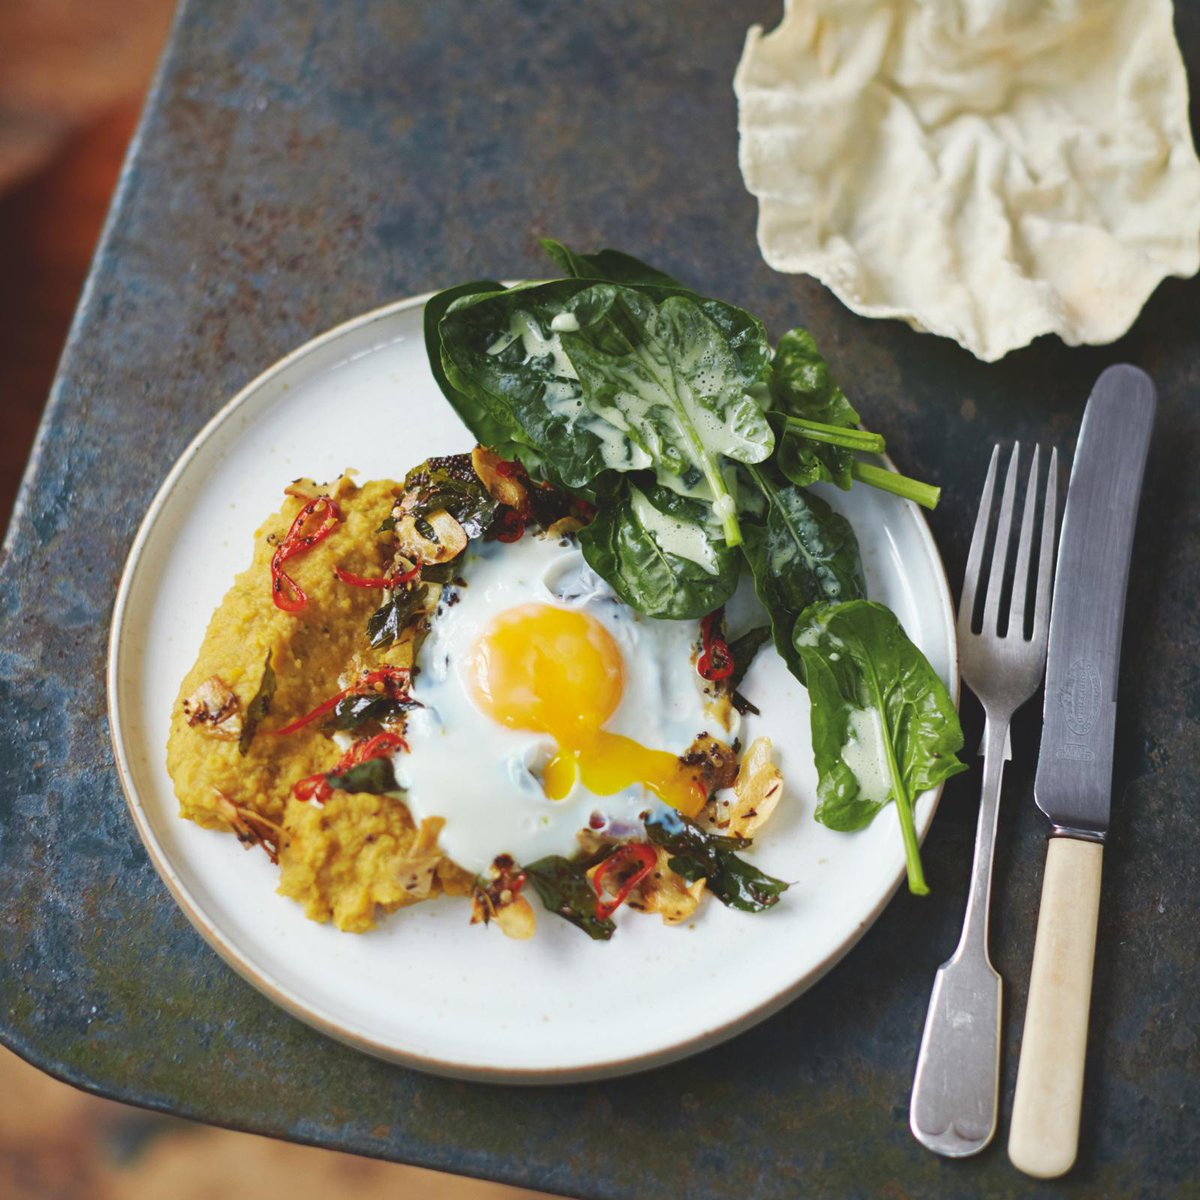 Tasty and delicious squash daal, special fried eggs & poppadoms #Lunch http://t.co/hy5BsP1OPx #JamiesSuperFood http://t.co/KK6Hjuk6Ix